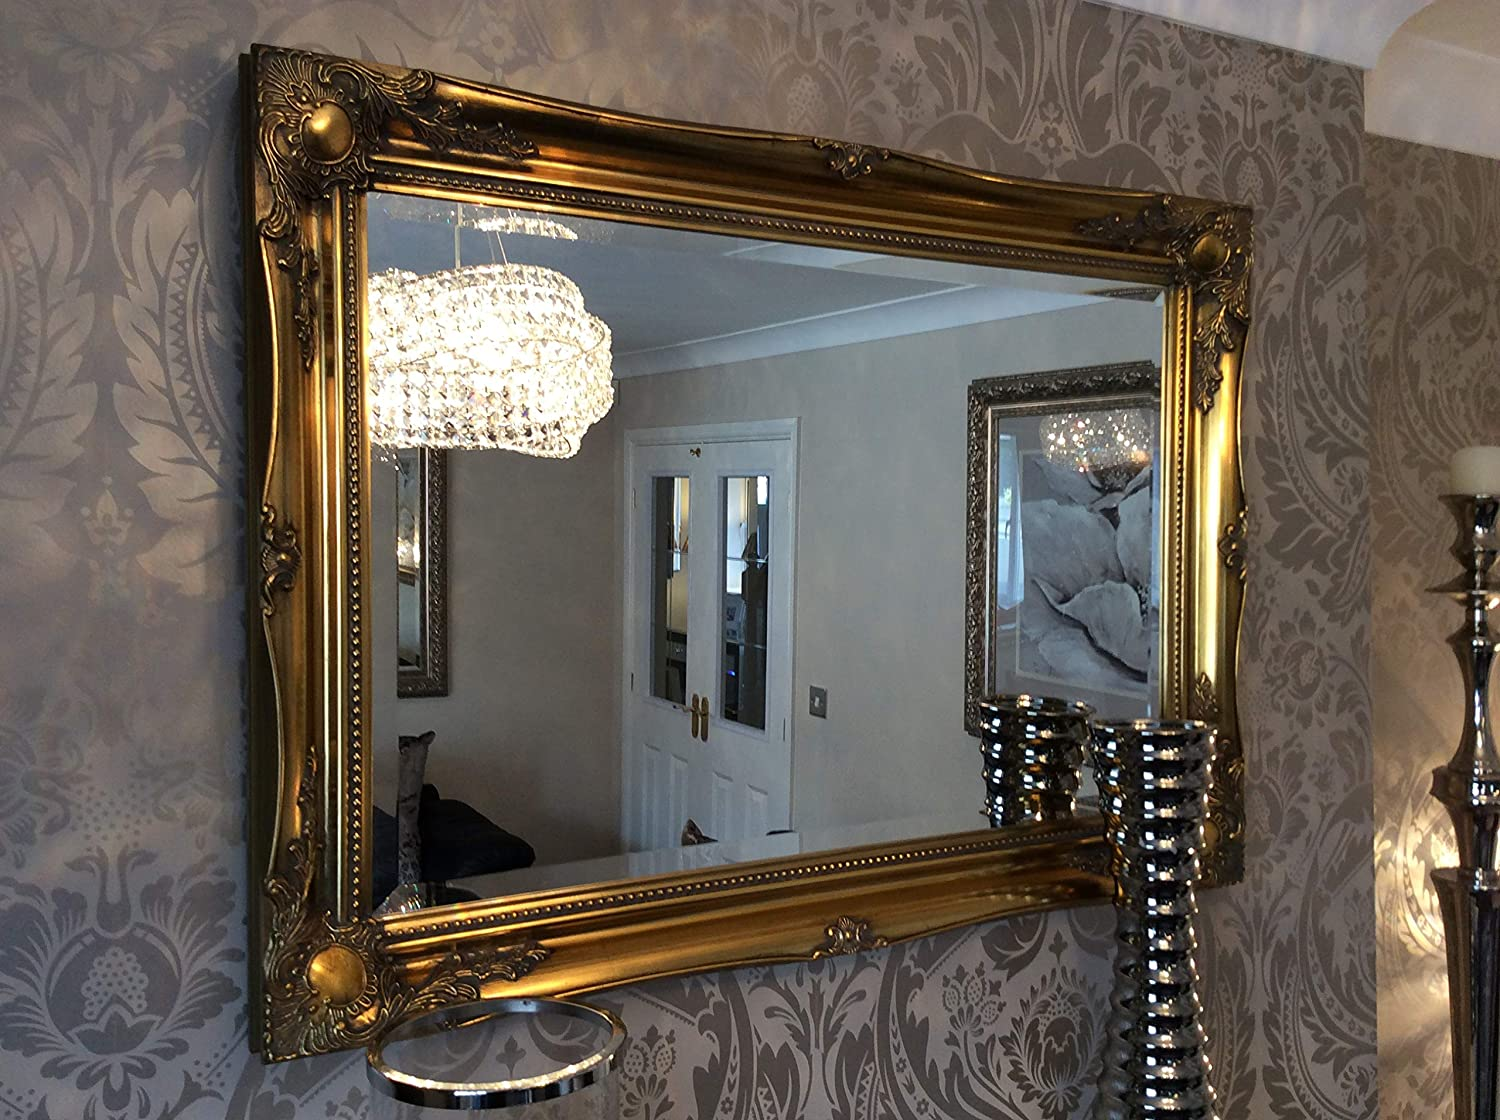 3ft6 X 2ft6 106cm X 76cm Large Gold Antique Style Ornate Big Wall Mirror Bargain Amazon Co Uk Kitchen Home